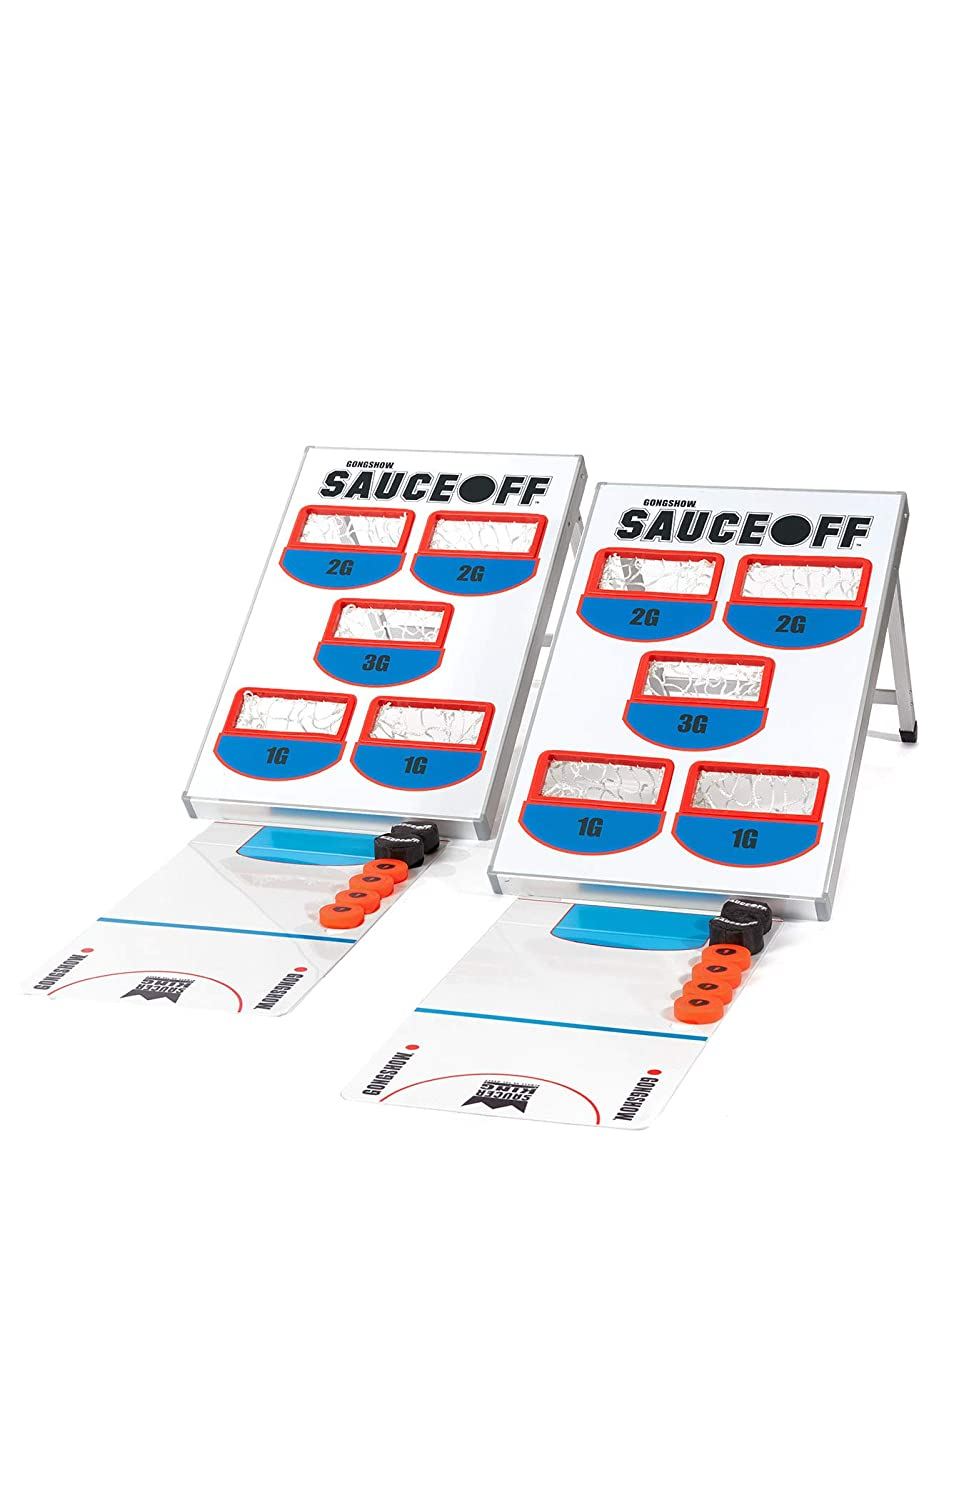 GONGSHOW SauceOFF Backyard Hockey Game and Training Set